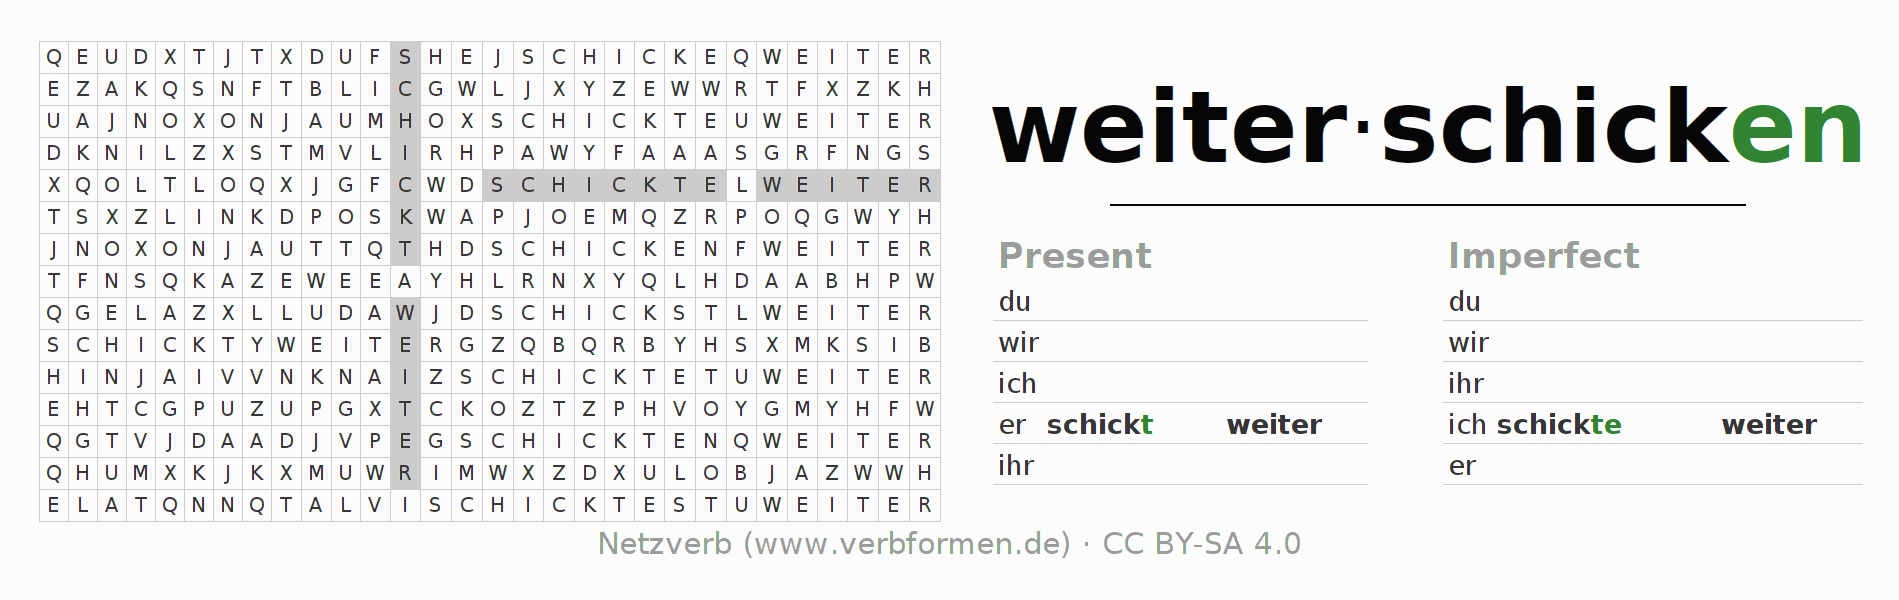 Word search puzzle for the conjugation of the verb weiterschicken